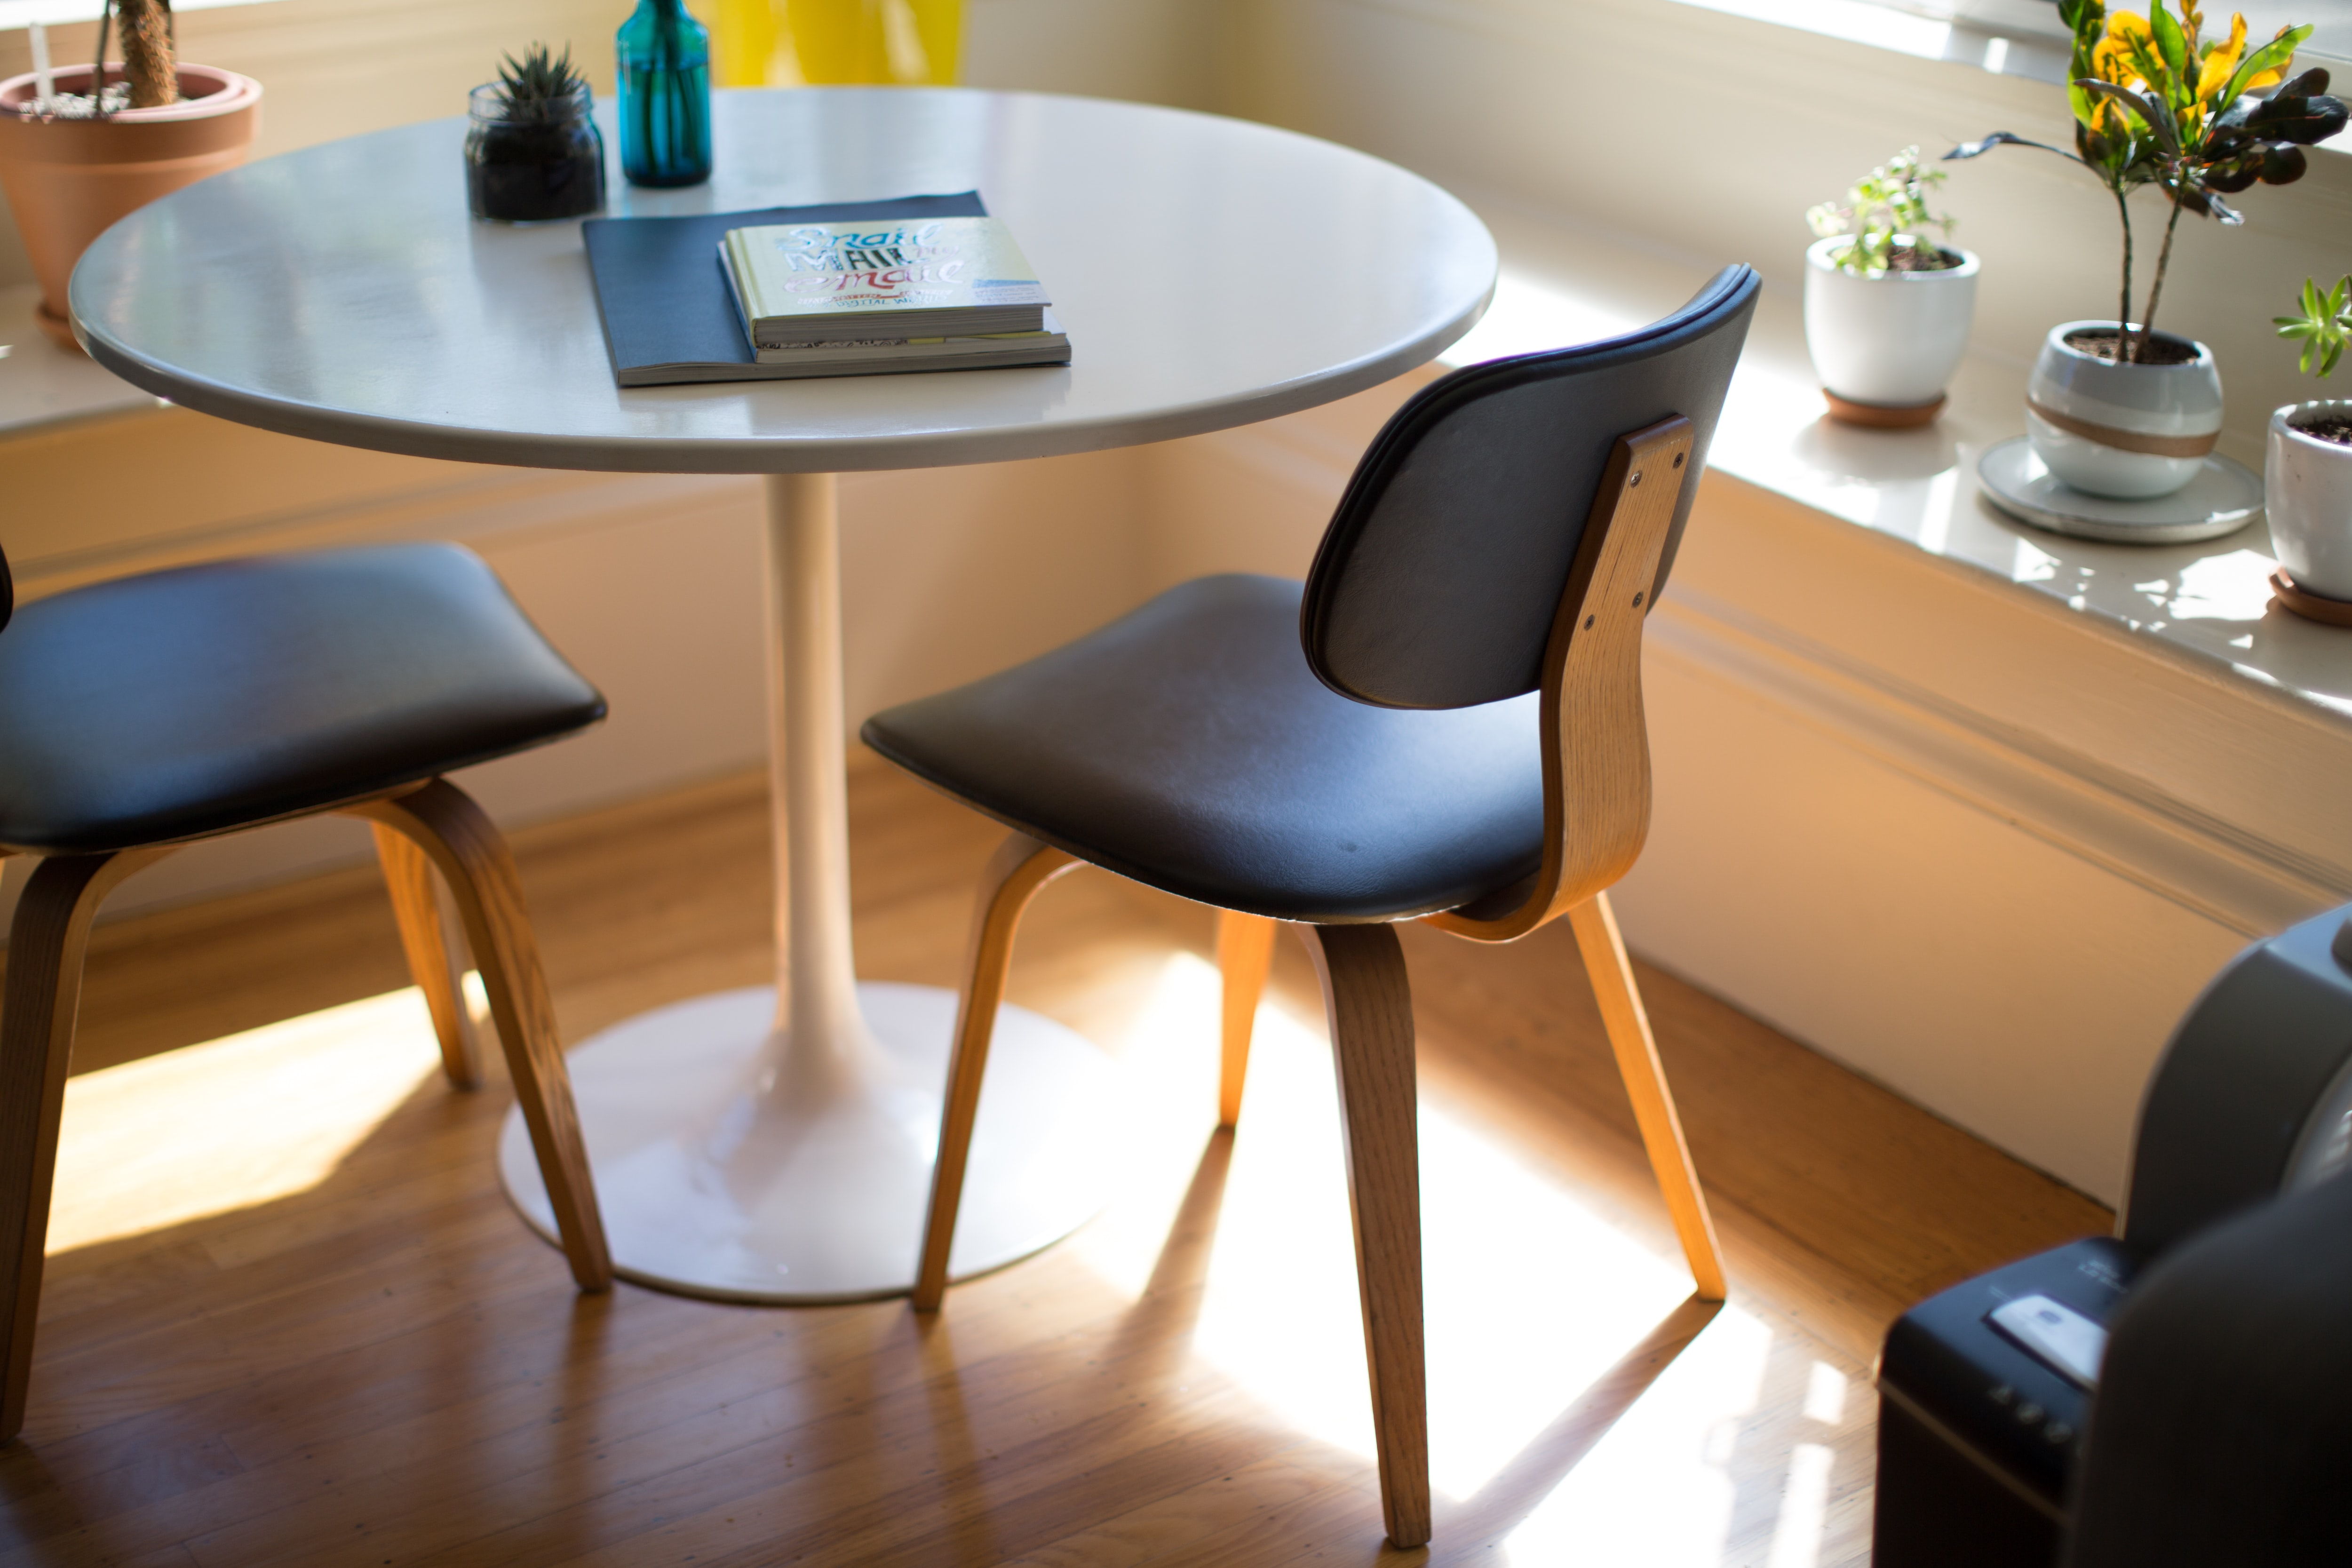 Our Small Business Seeks To Provide Furniture, Electronics And Home Goods  At Discounted Prices. Our Goal Is To Deliver Our Costumers A Variety Of Top  End, ...